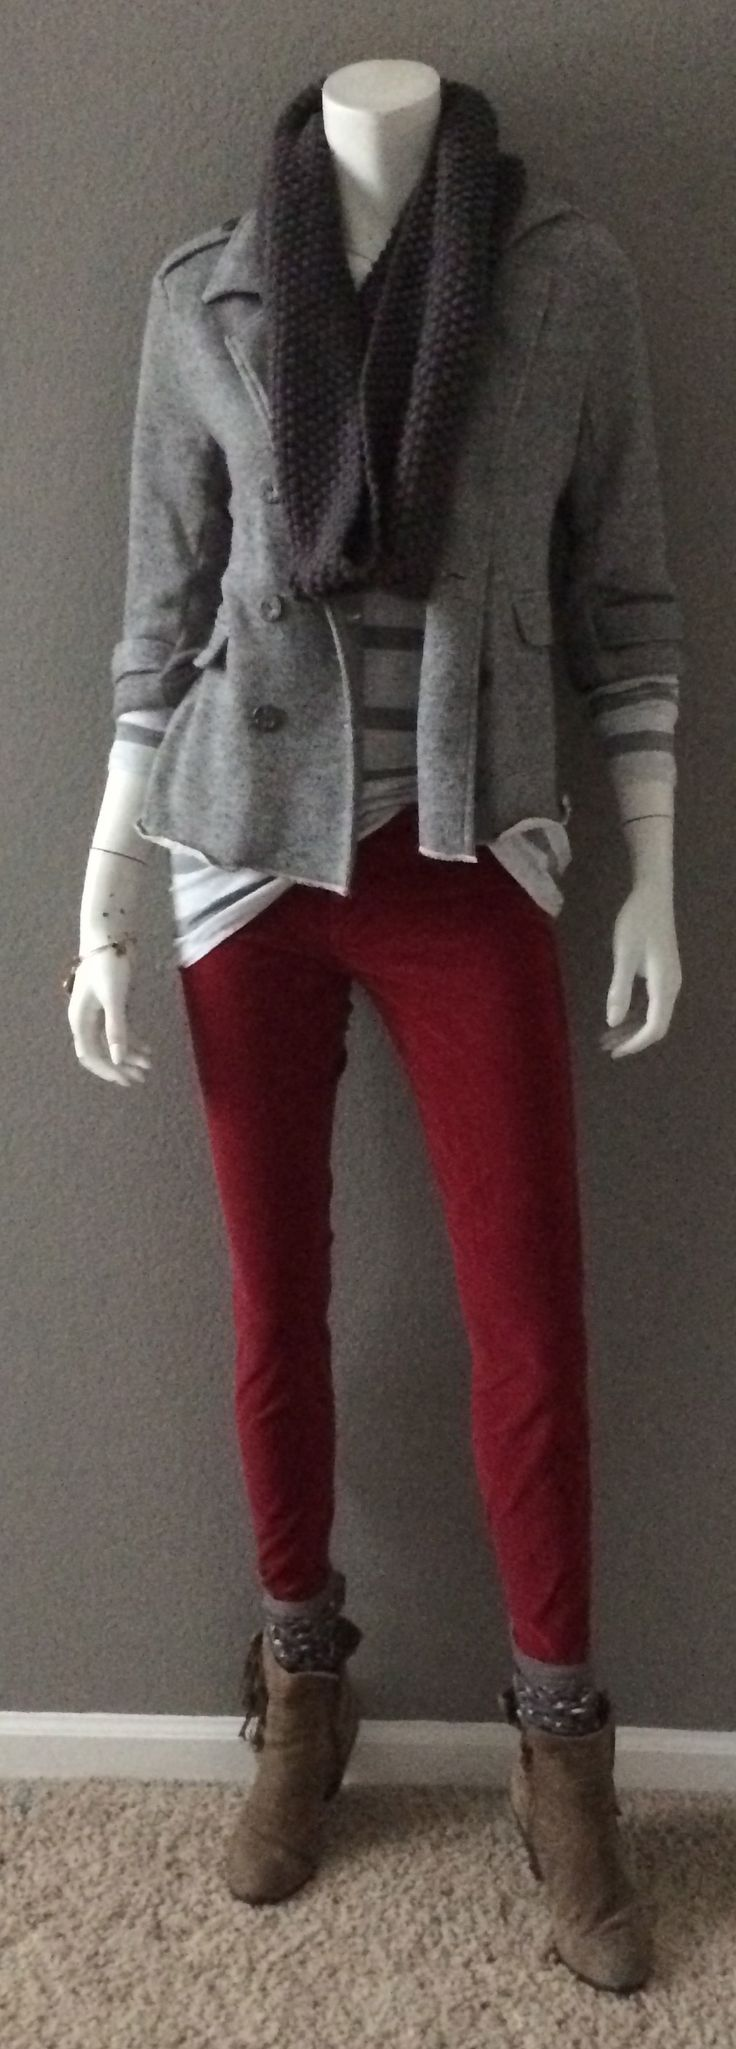 Daily Look: CAbi Fall '14  Striped Shirt with vintage Crimson Cord, Cocoon Scarf and Shrunken Peacoat with Sam Edleman Booties. #fallfashion #cabiclothing